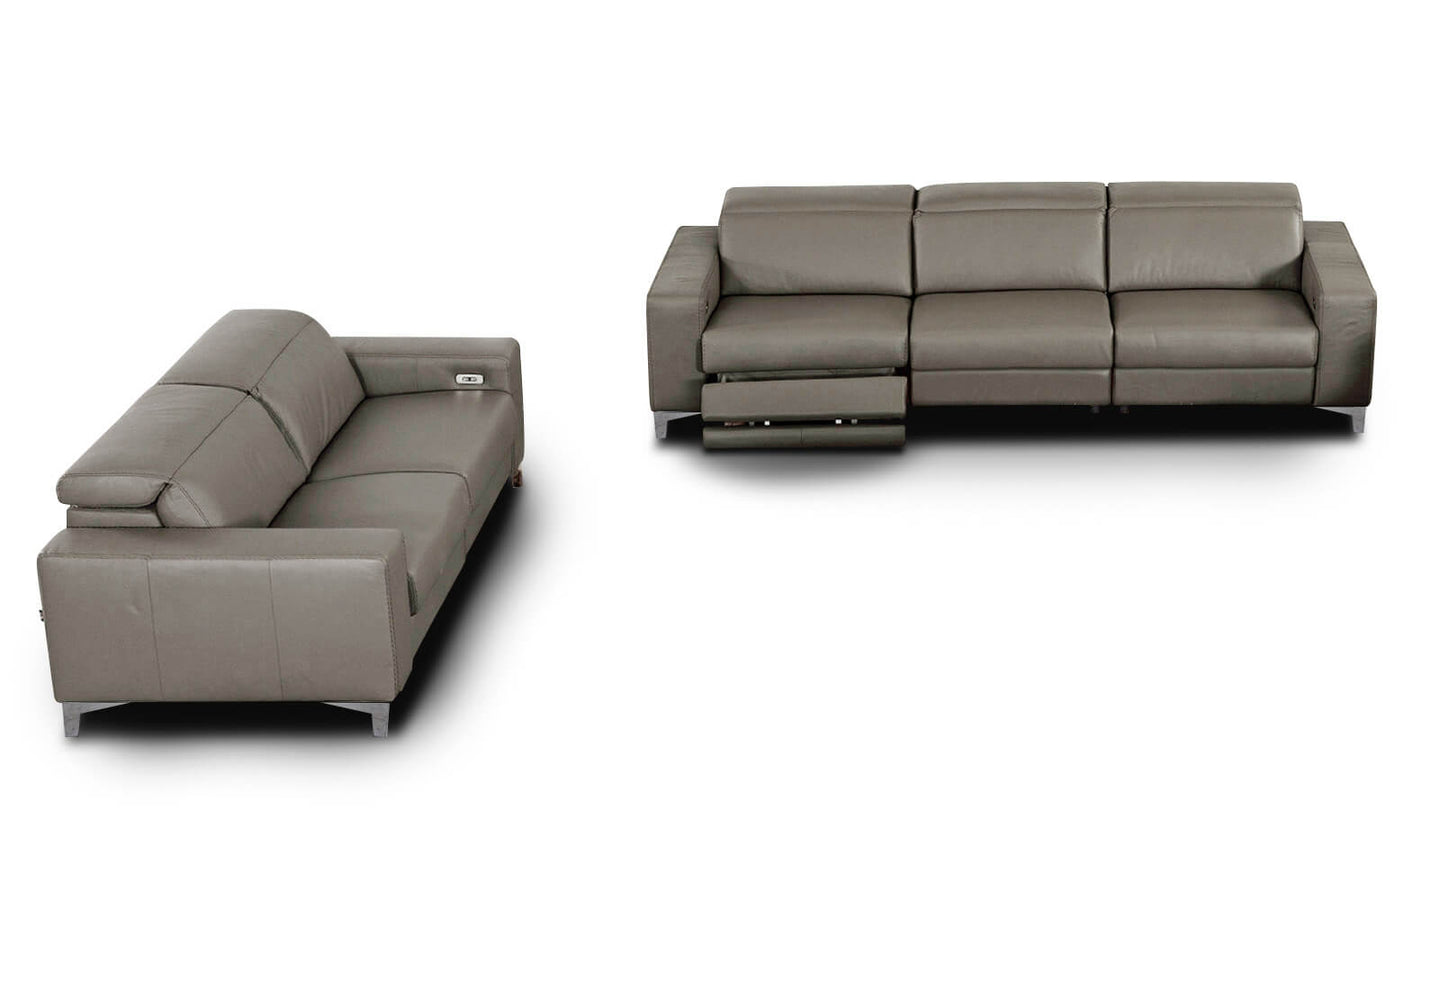 Stozza Sofá y Loveseat con 4 Reclinables Piel Cat 03 Graysh